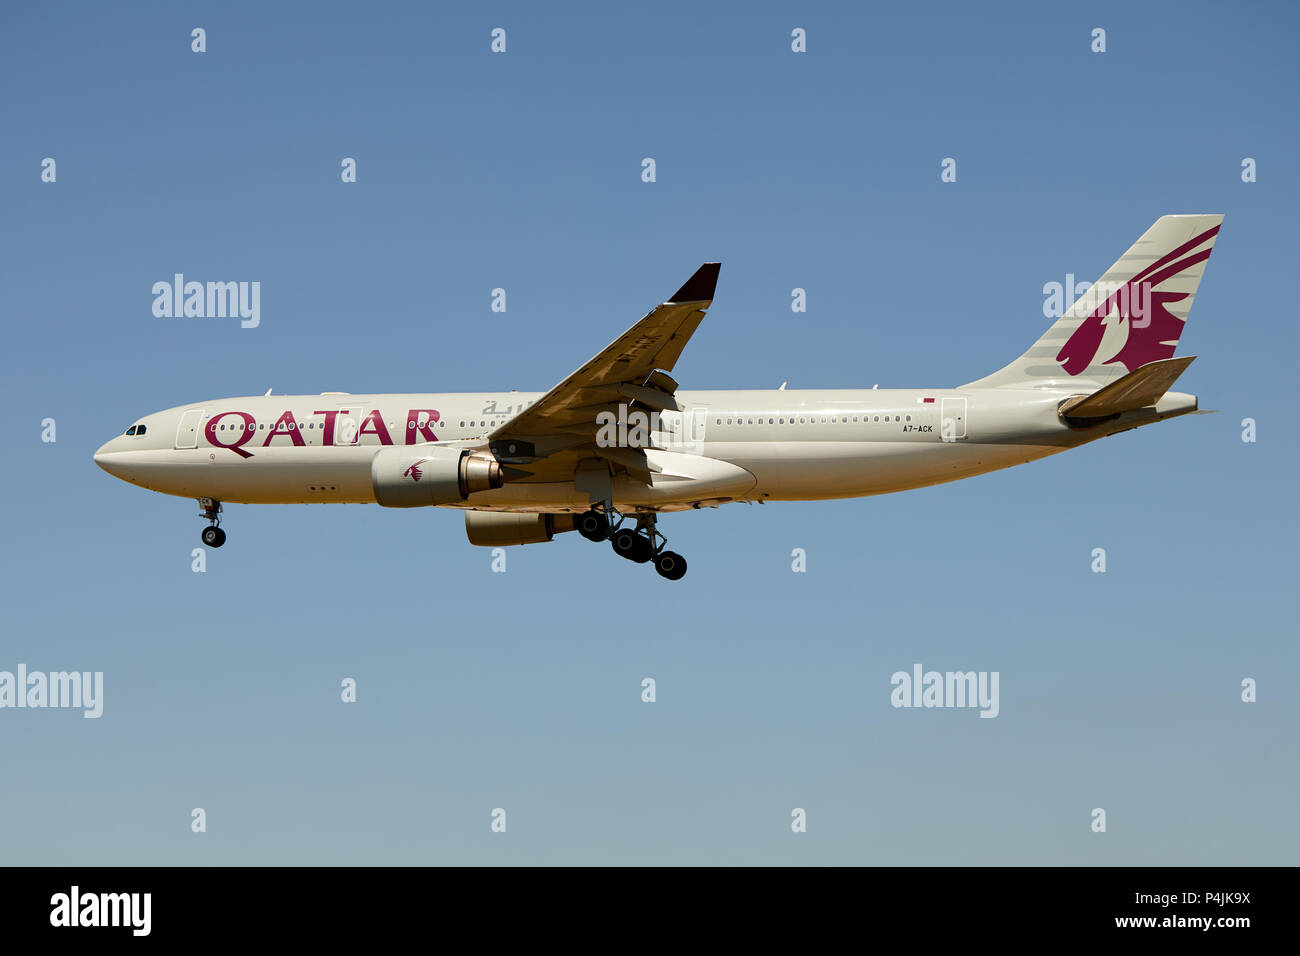 A Qatar Airways Airbus A330-202 aircraft, registration number A7-ACK, approaching a landing. - Stock Image